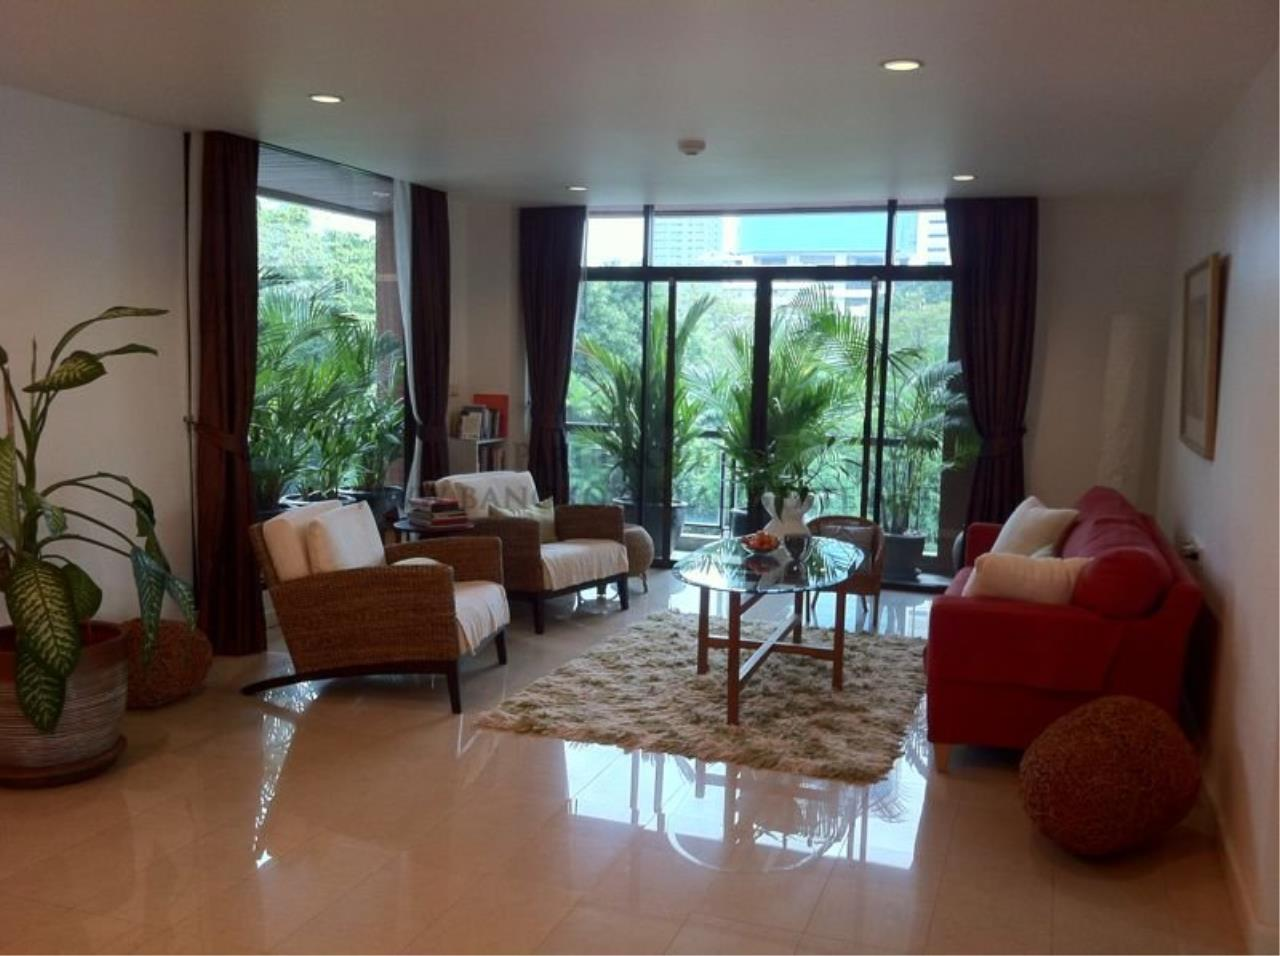 Piri Property Agency's Baan Ananda - Luxurious and Spacious 3 plus 1 BR Condo for Sale 1